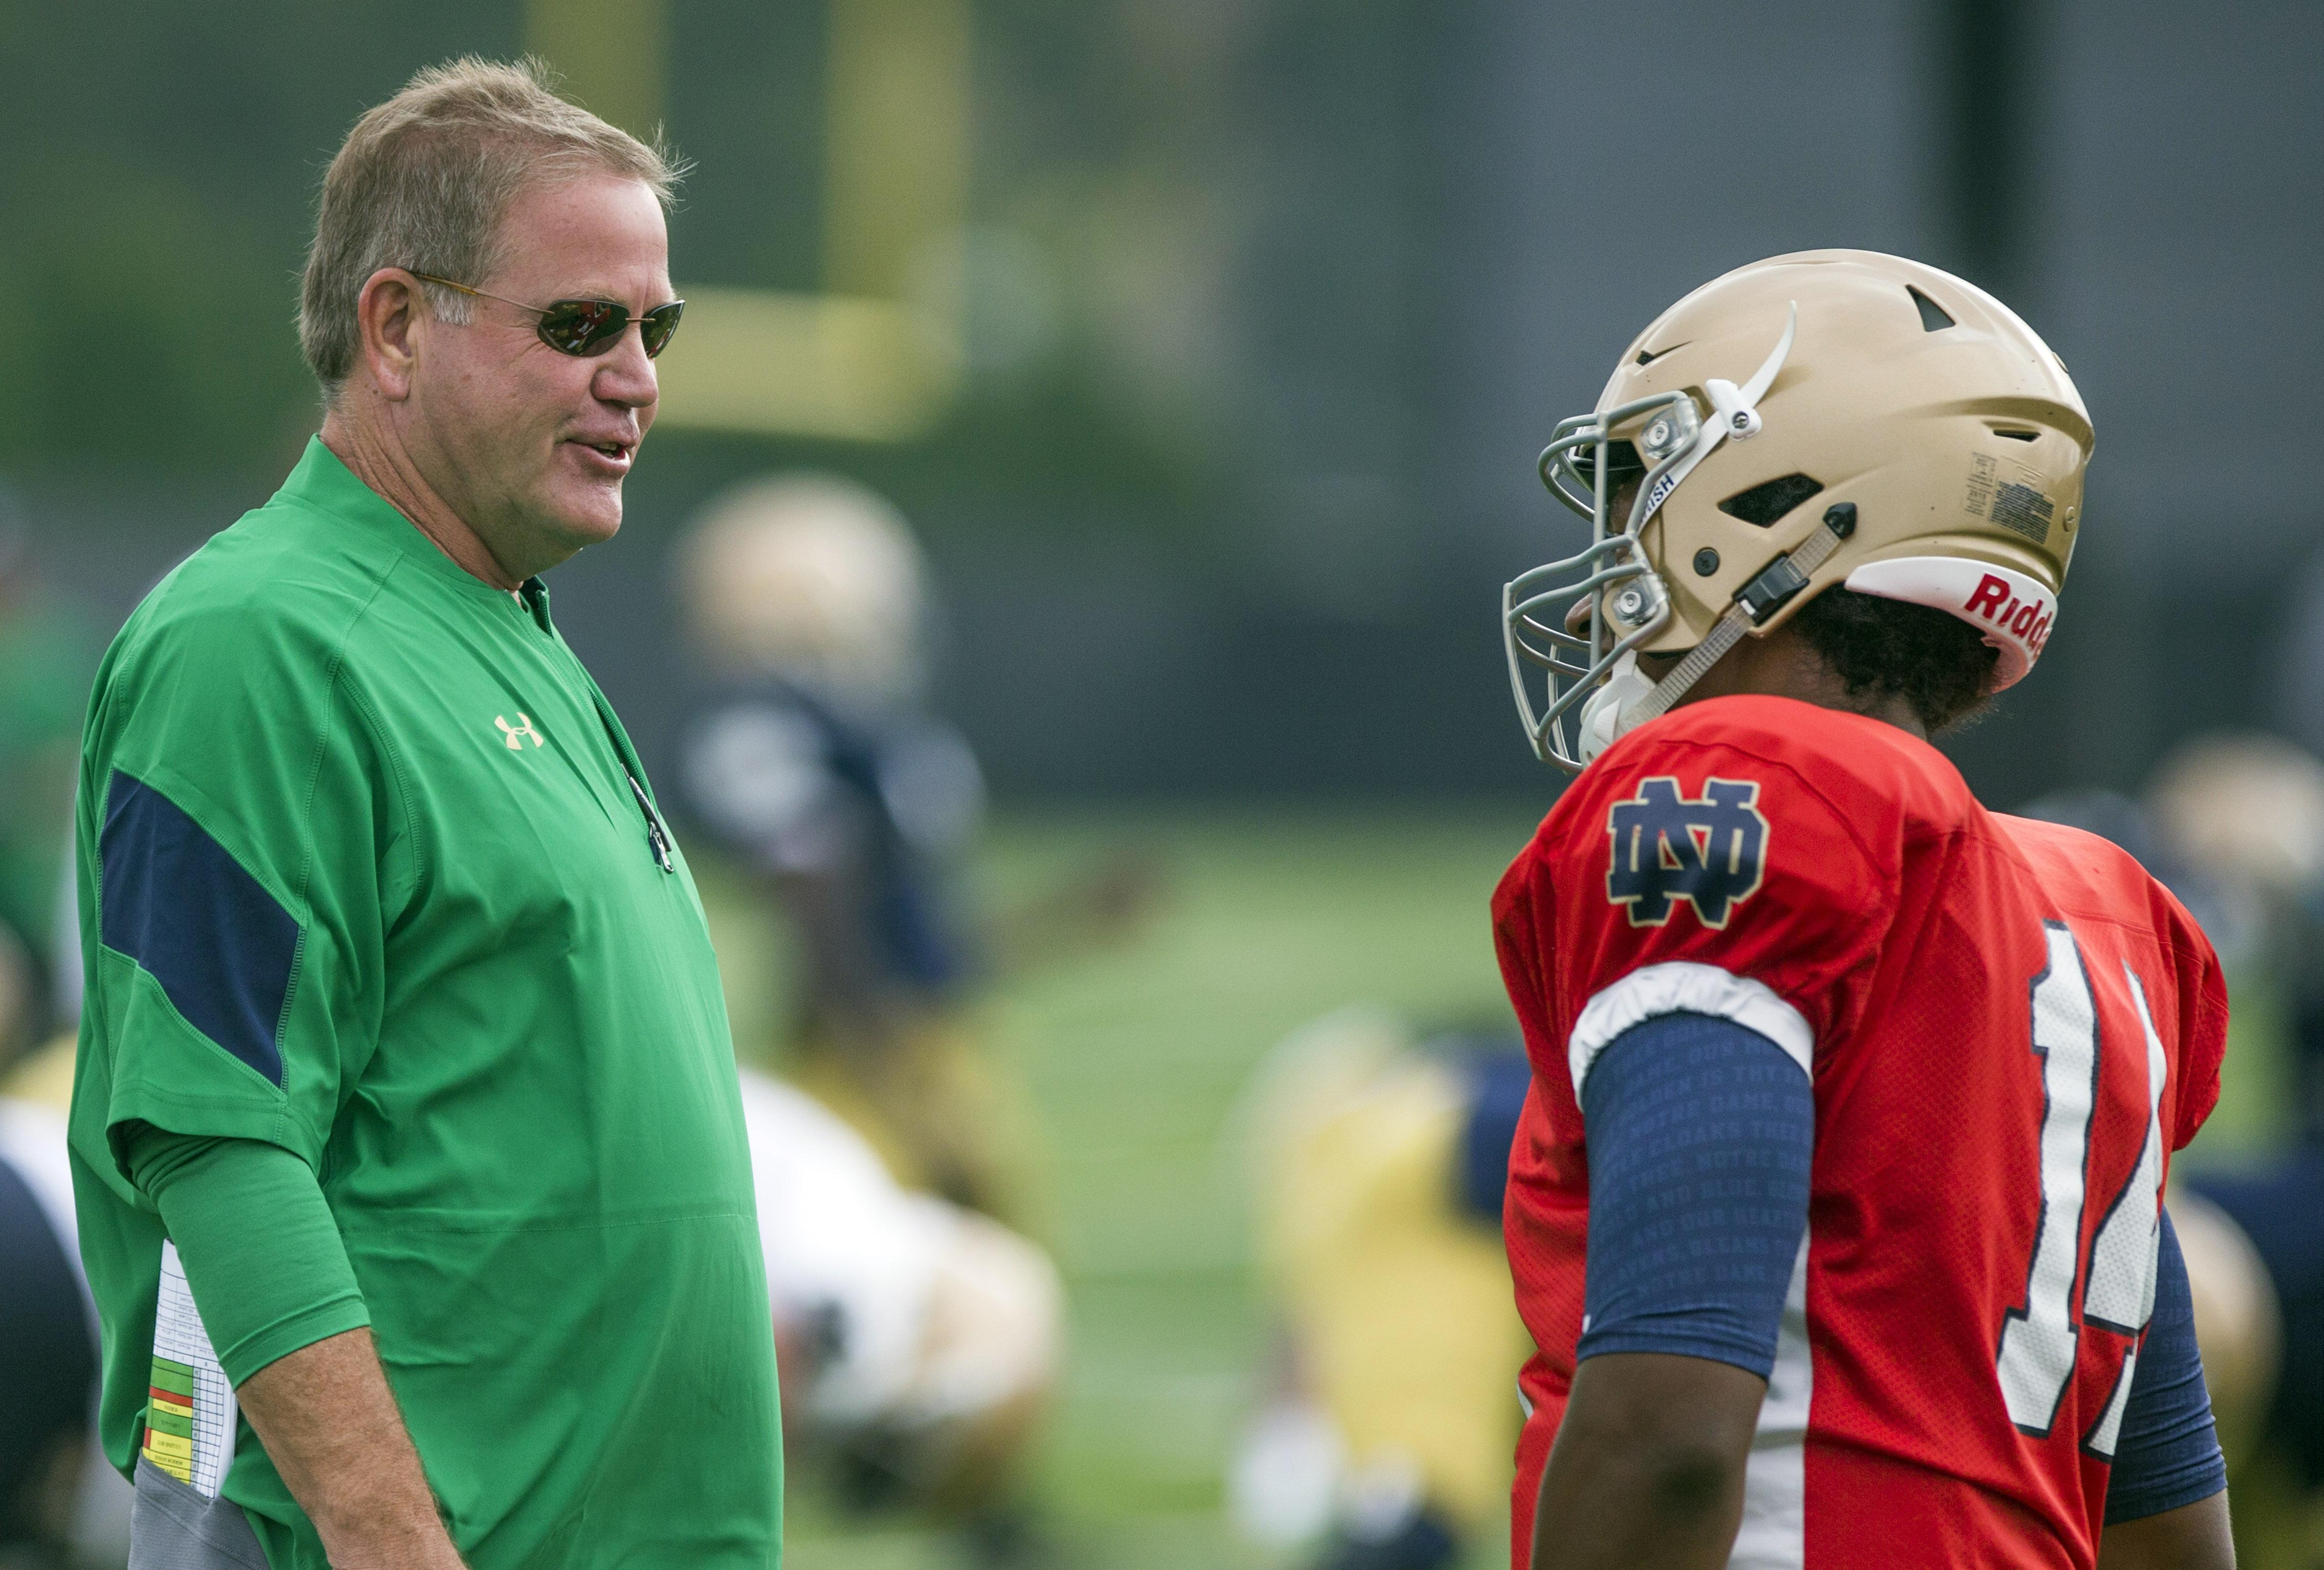 Notre_dame_football